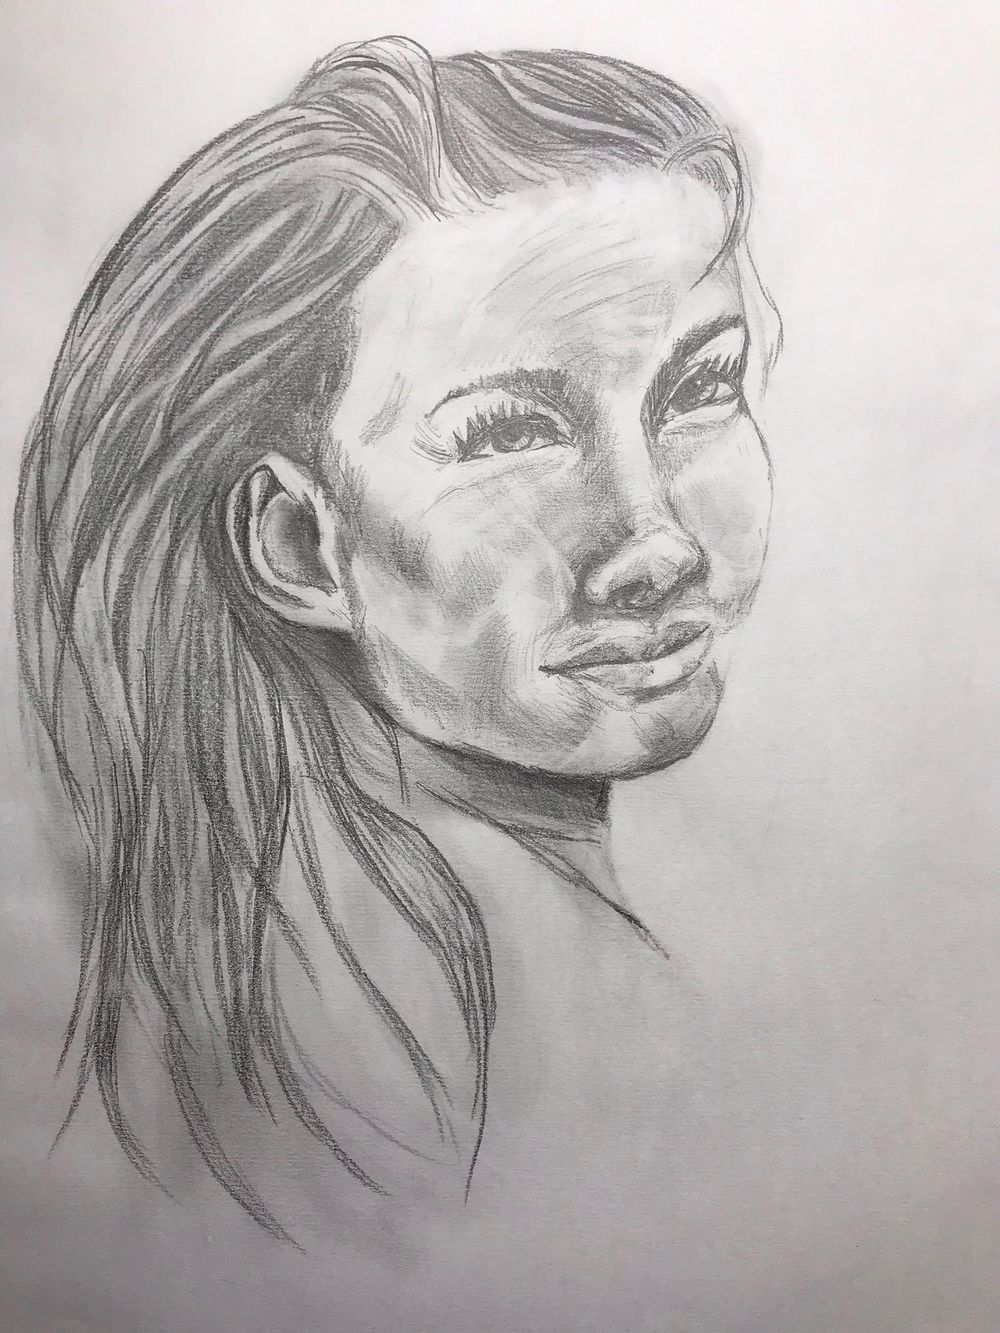 Portraiture Drawing - image 1 - student project